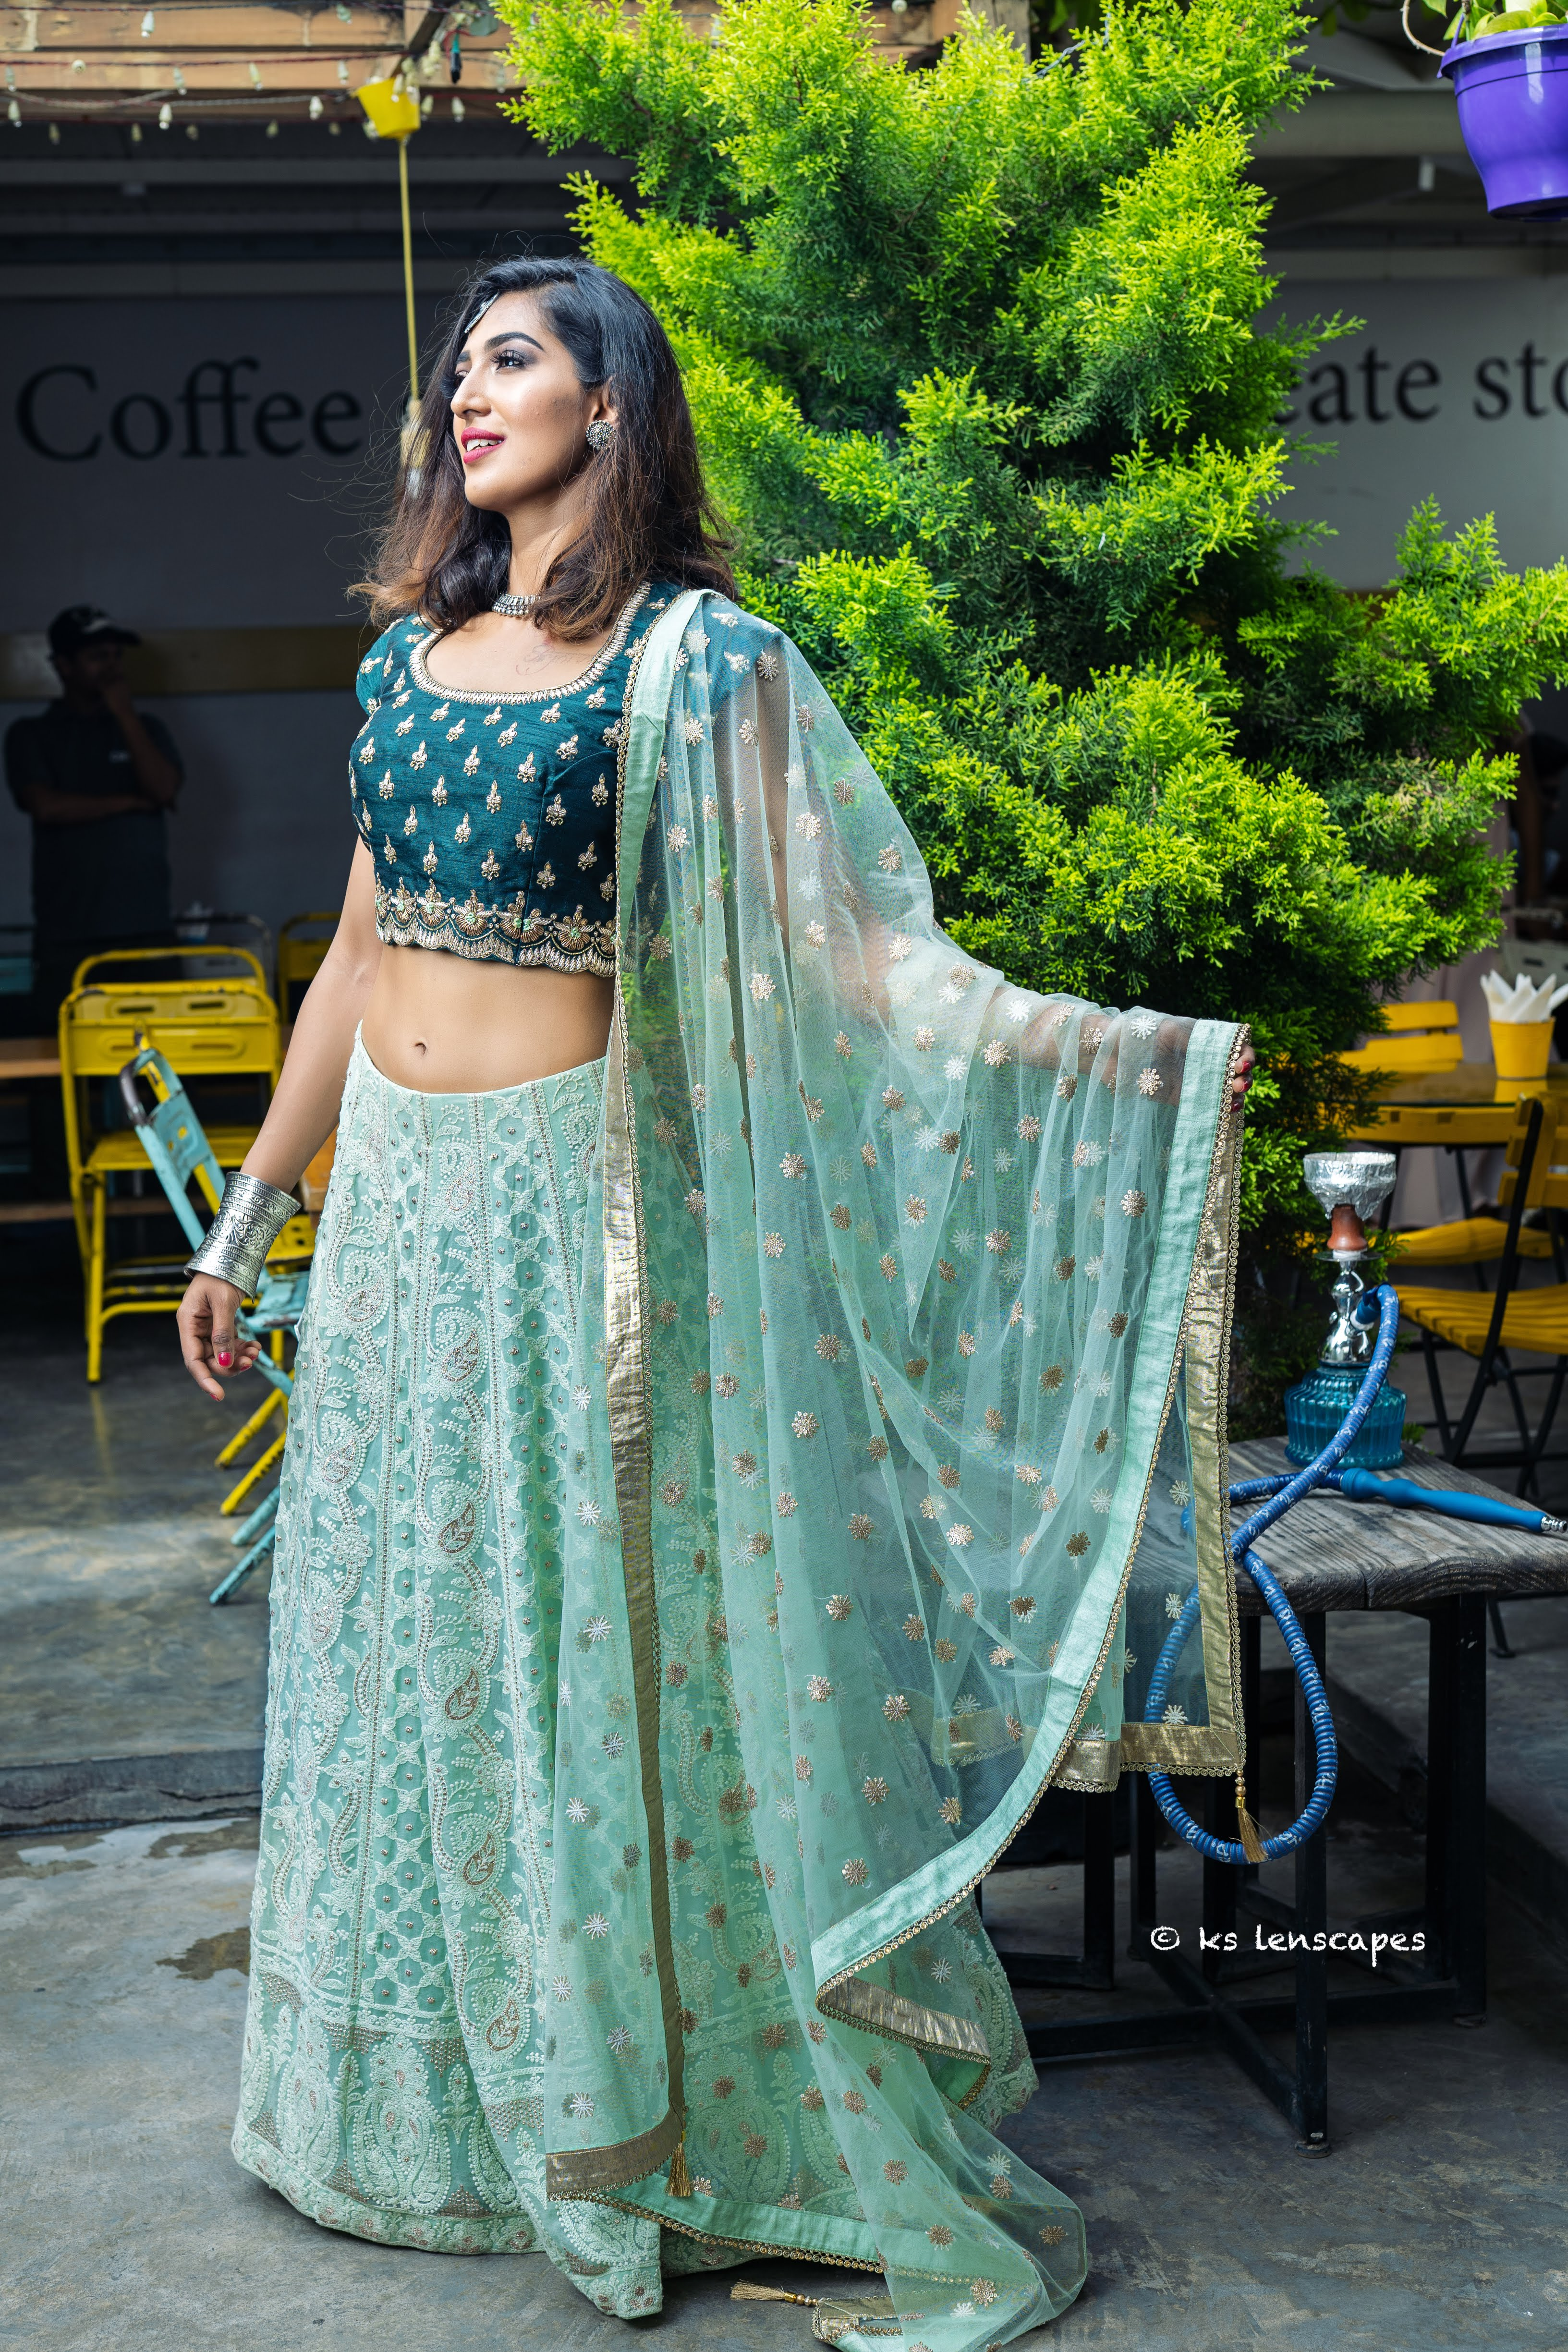 Featuring an ethereal Chikankari Emerald Green Lehenga, with translucent overlapping sequins on the blouse.